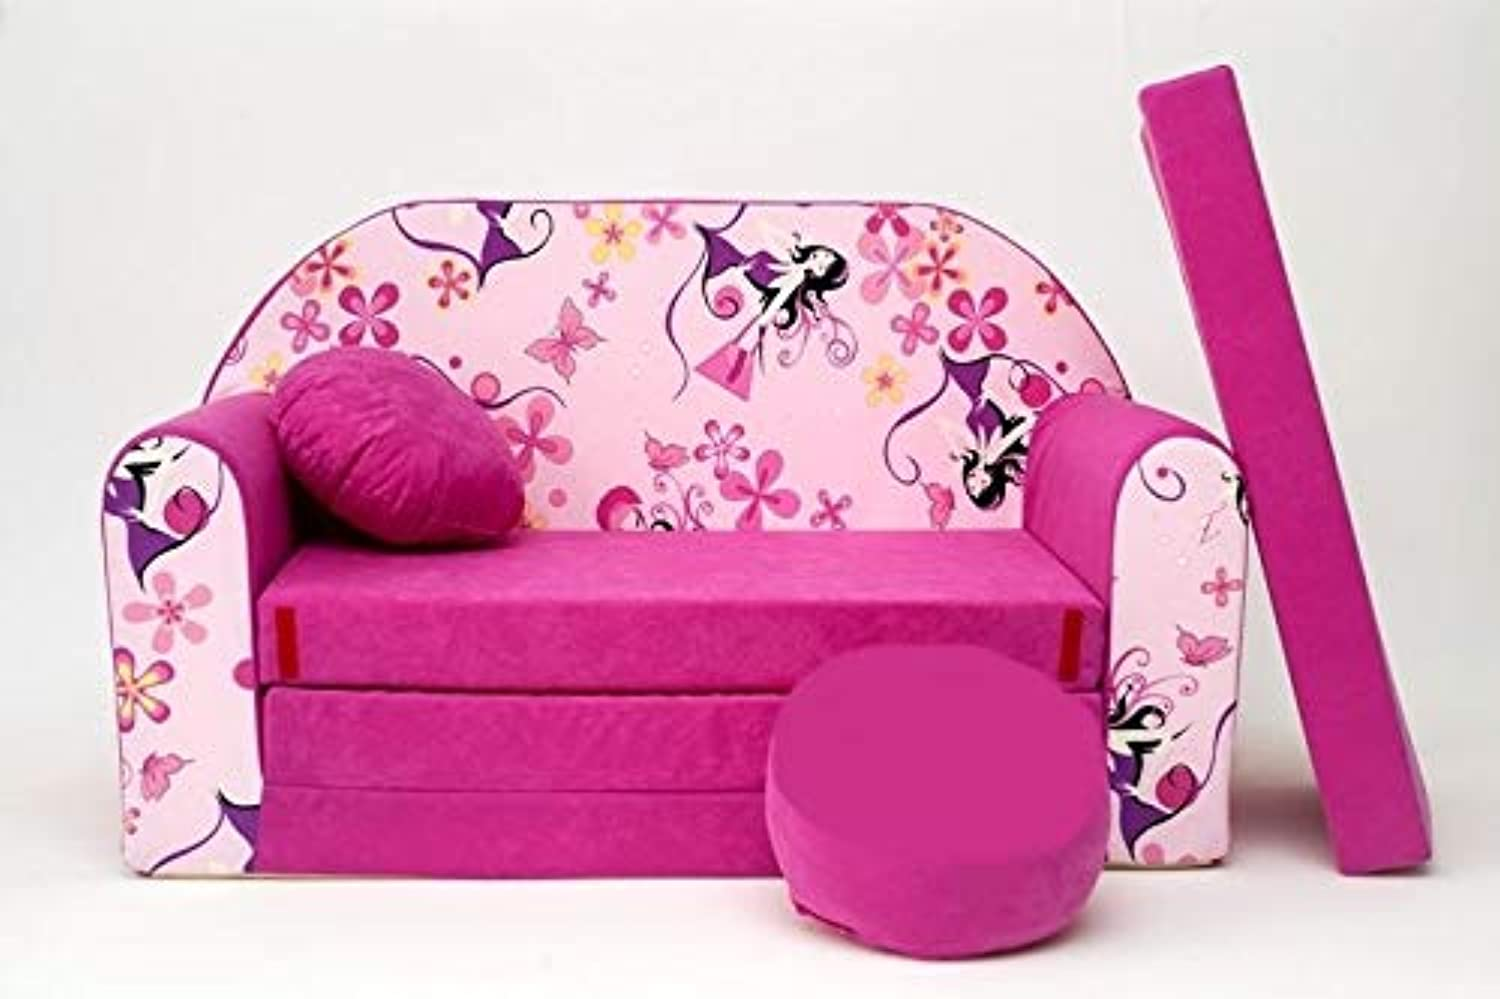 Pro Cosmo H10 Kids Sofa Bed Futon with Pouffe Footstool Pillow, Fabric, Pink, 168 x 98 x 60 cm